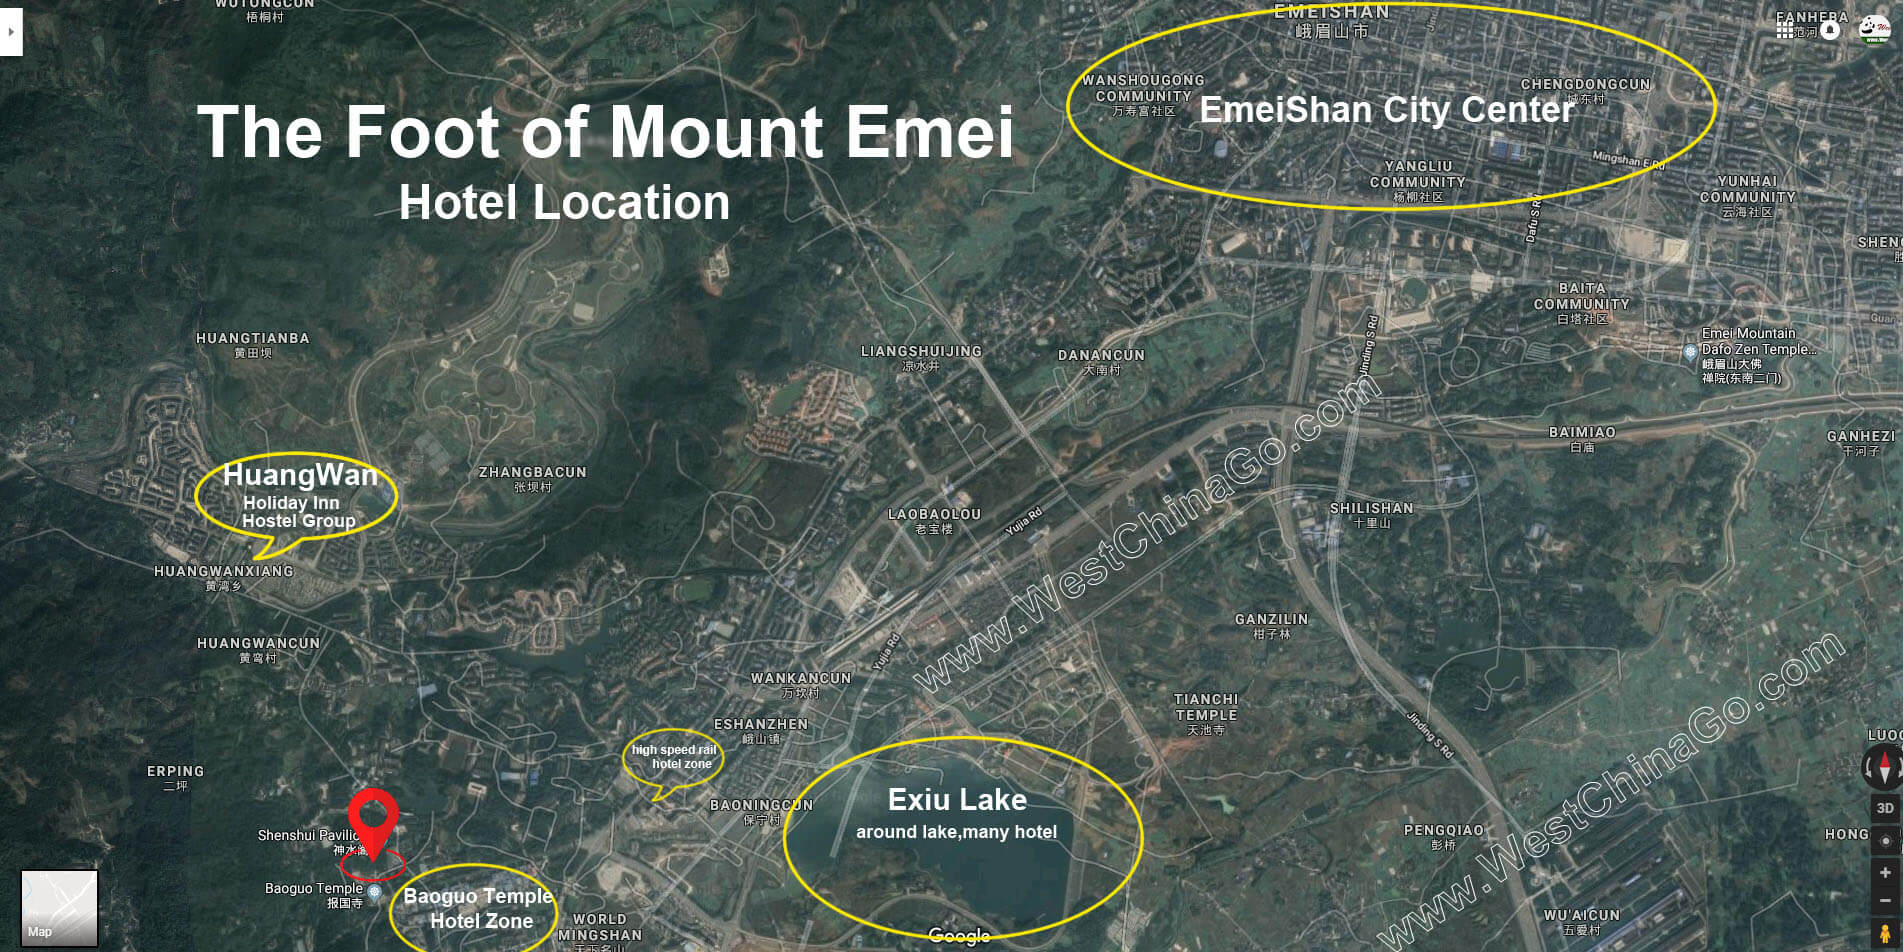 Mountain Emei hotel map